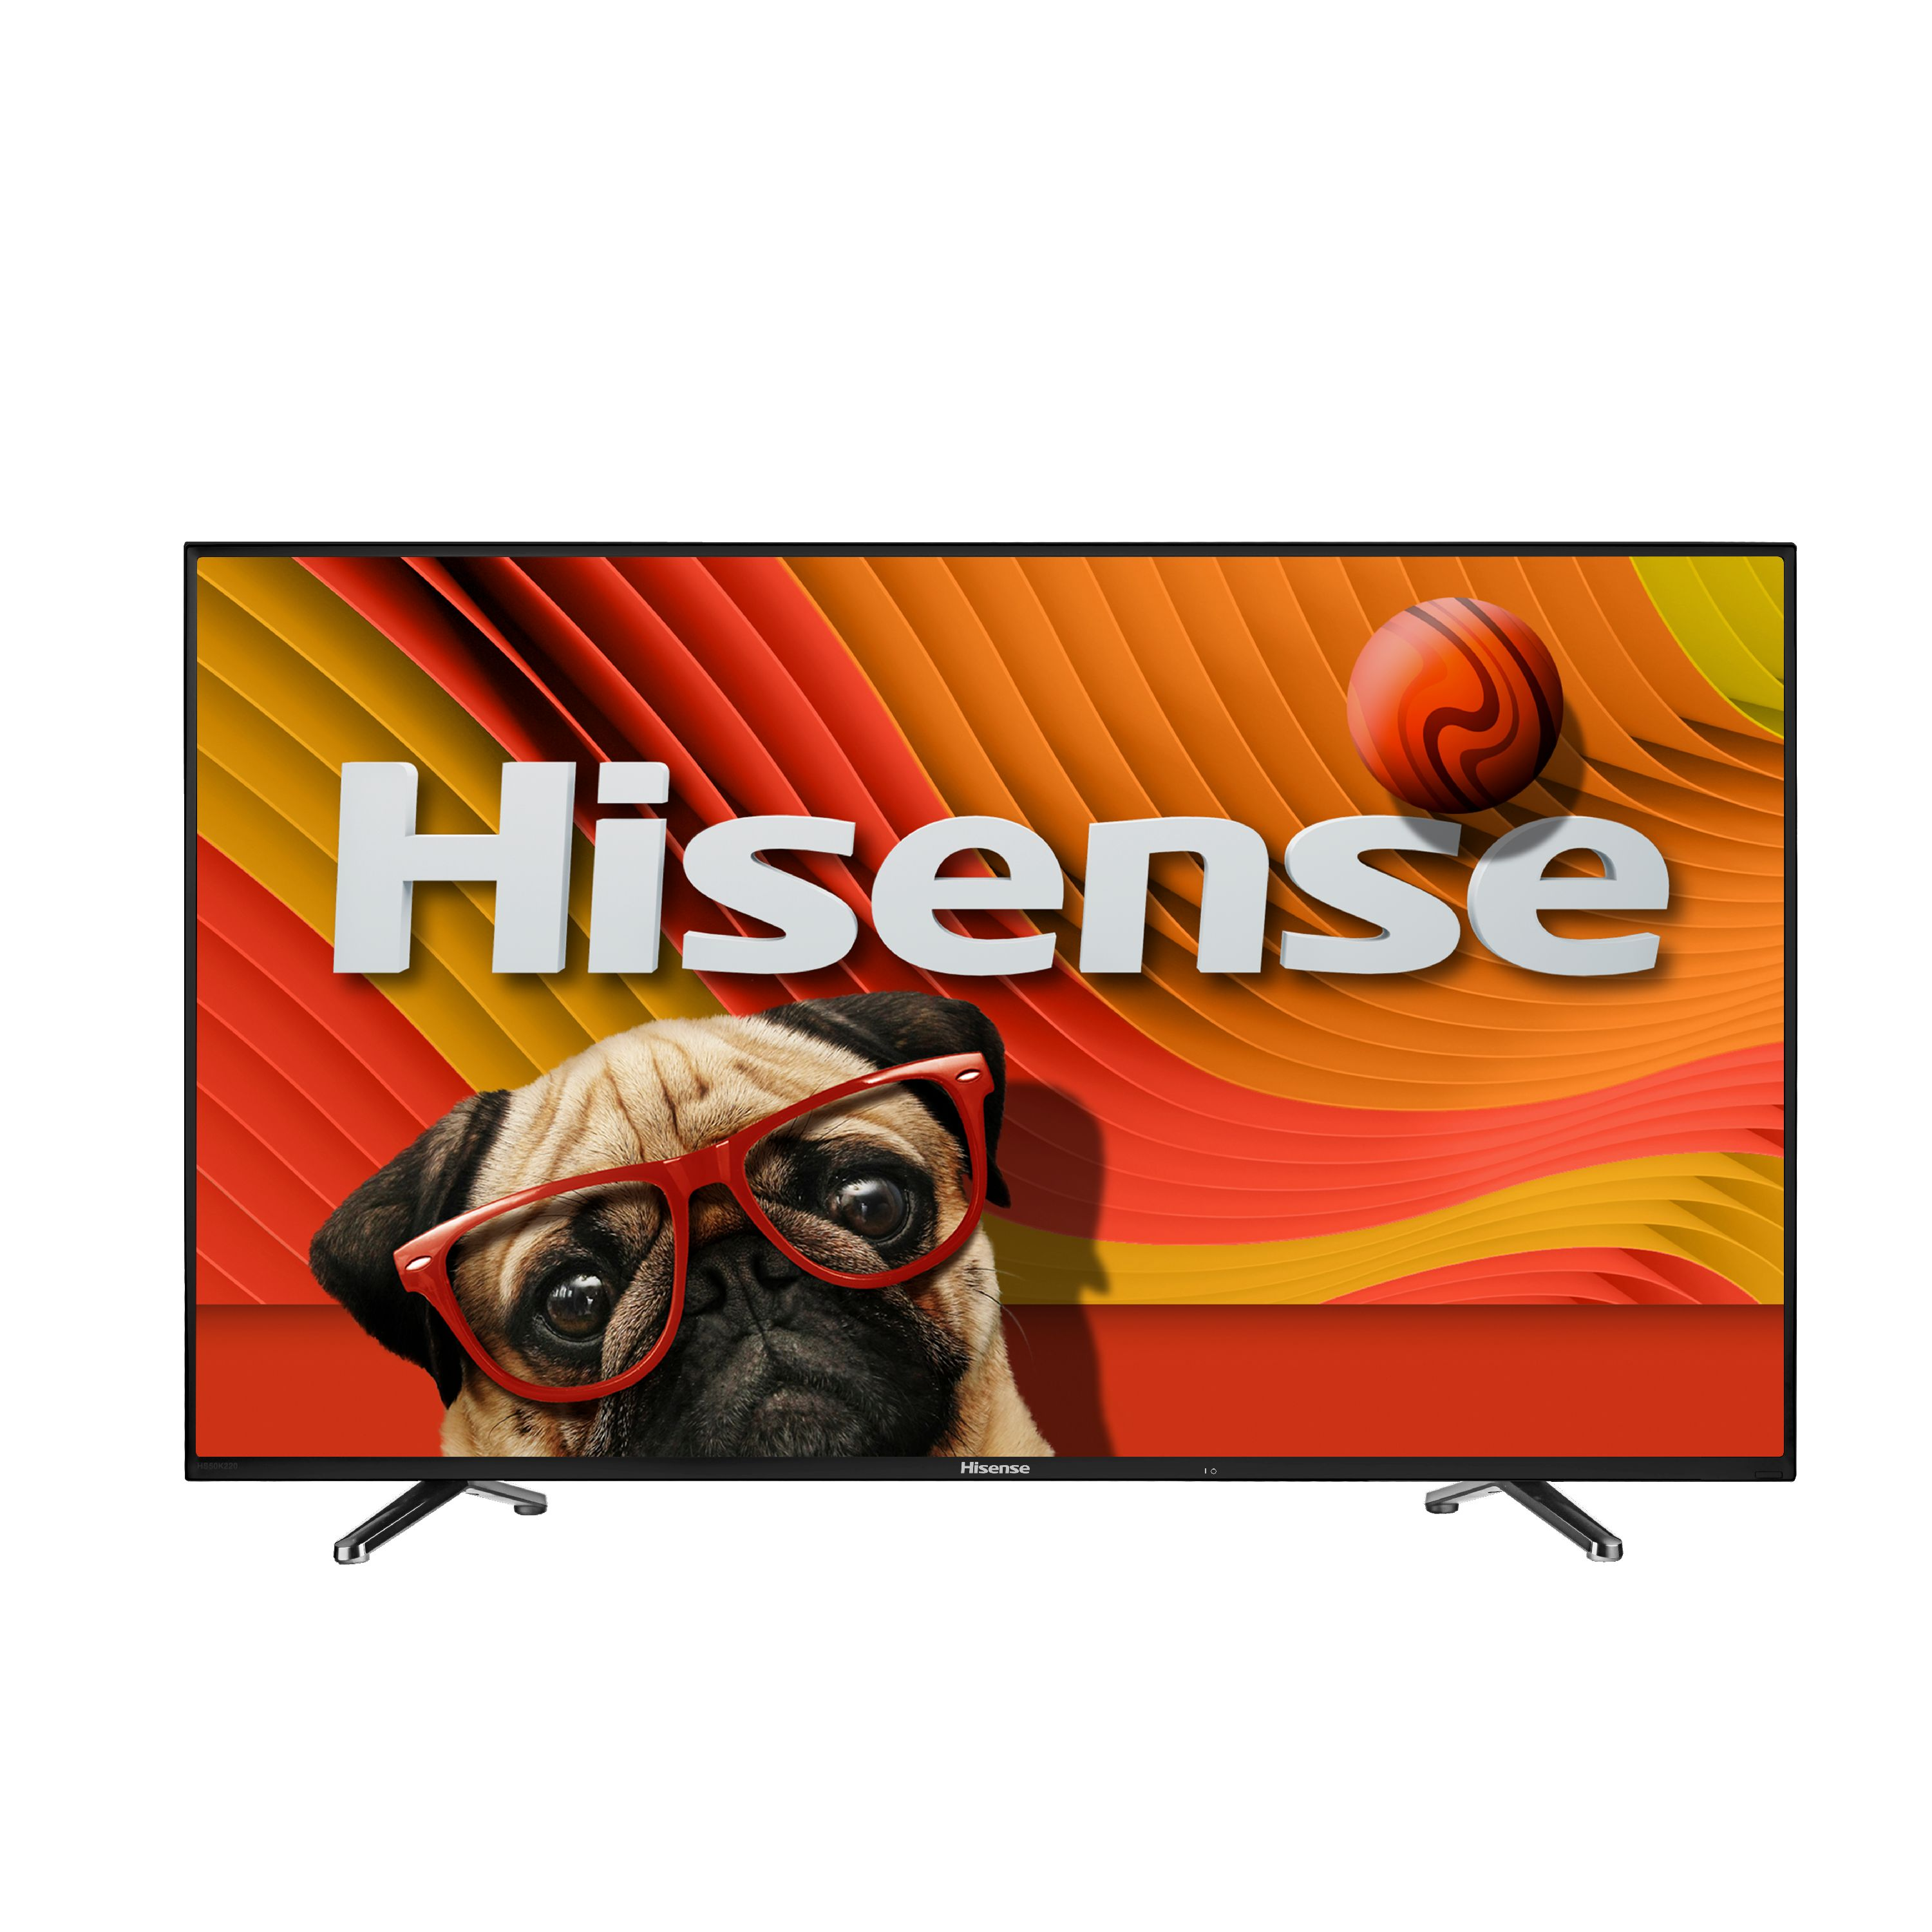 "Hisense 55"" Class FHD(1080p) Smart LED TV (55H5C)"